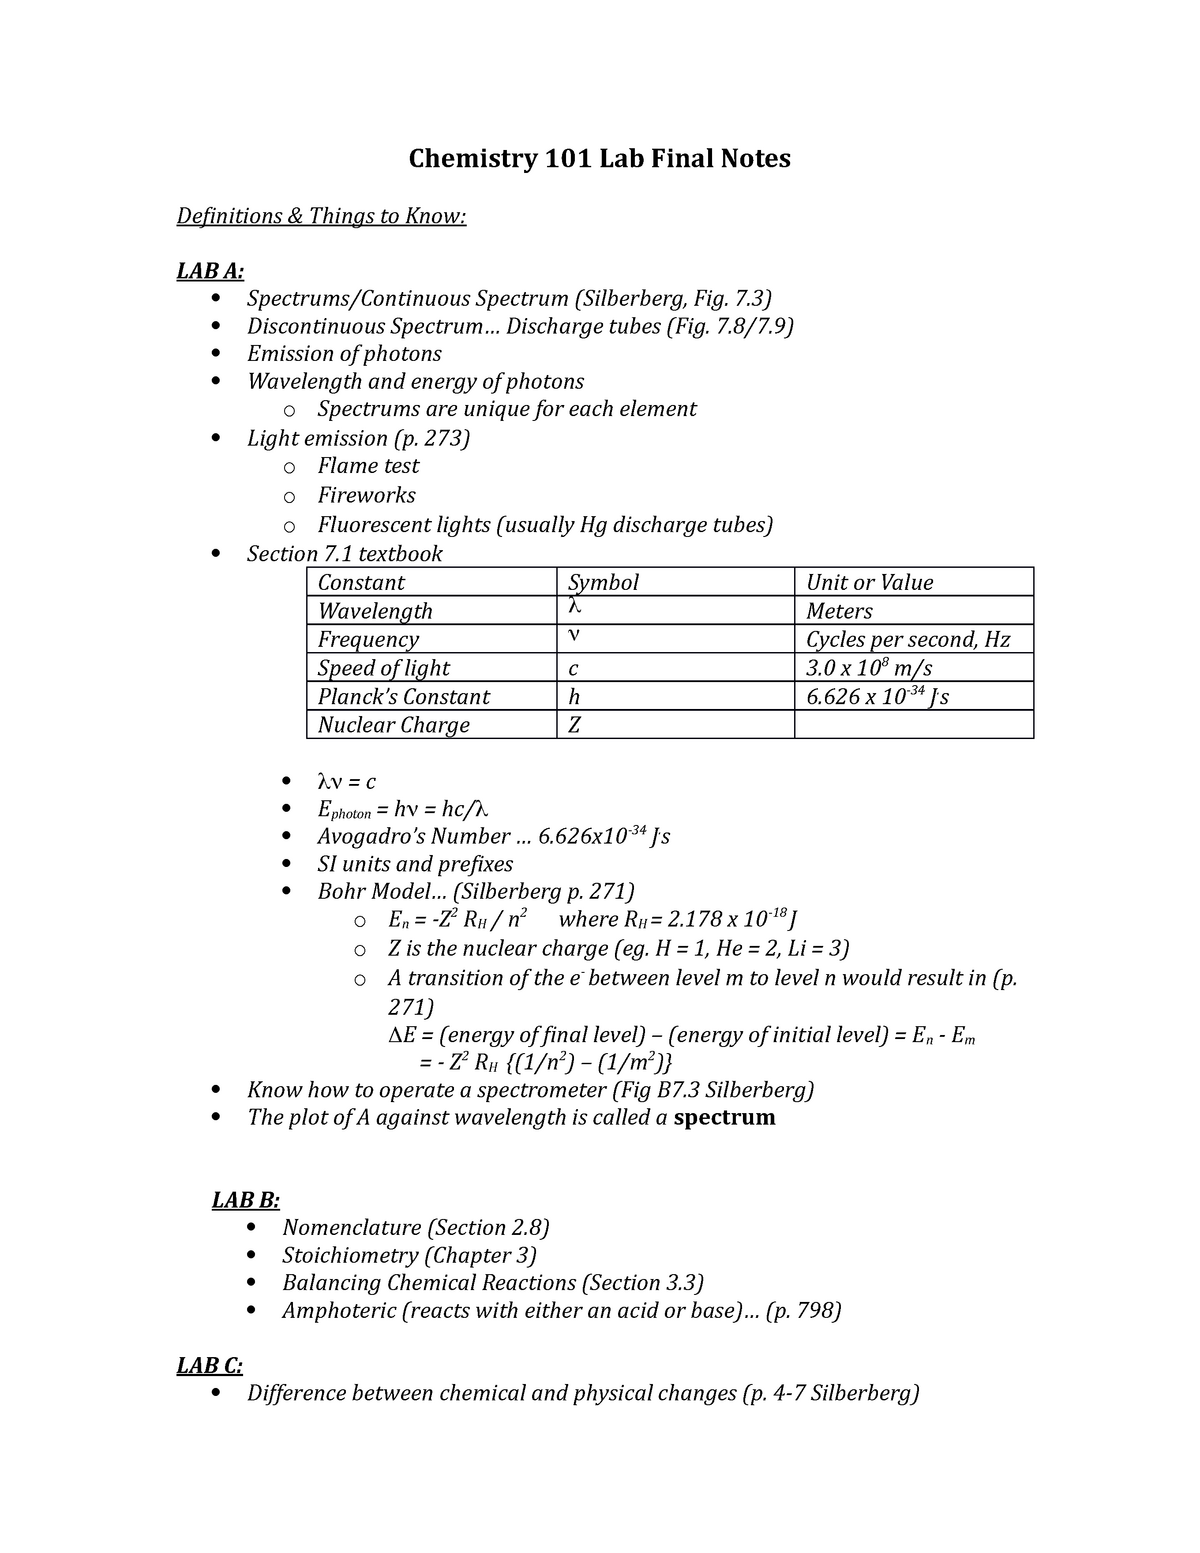 Summary - lab notes for the final lab exam - Chem101 - StuDocu